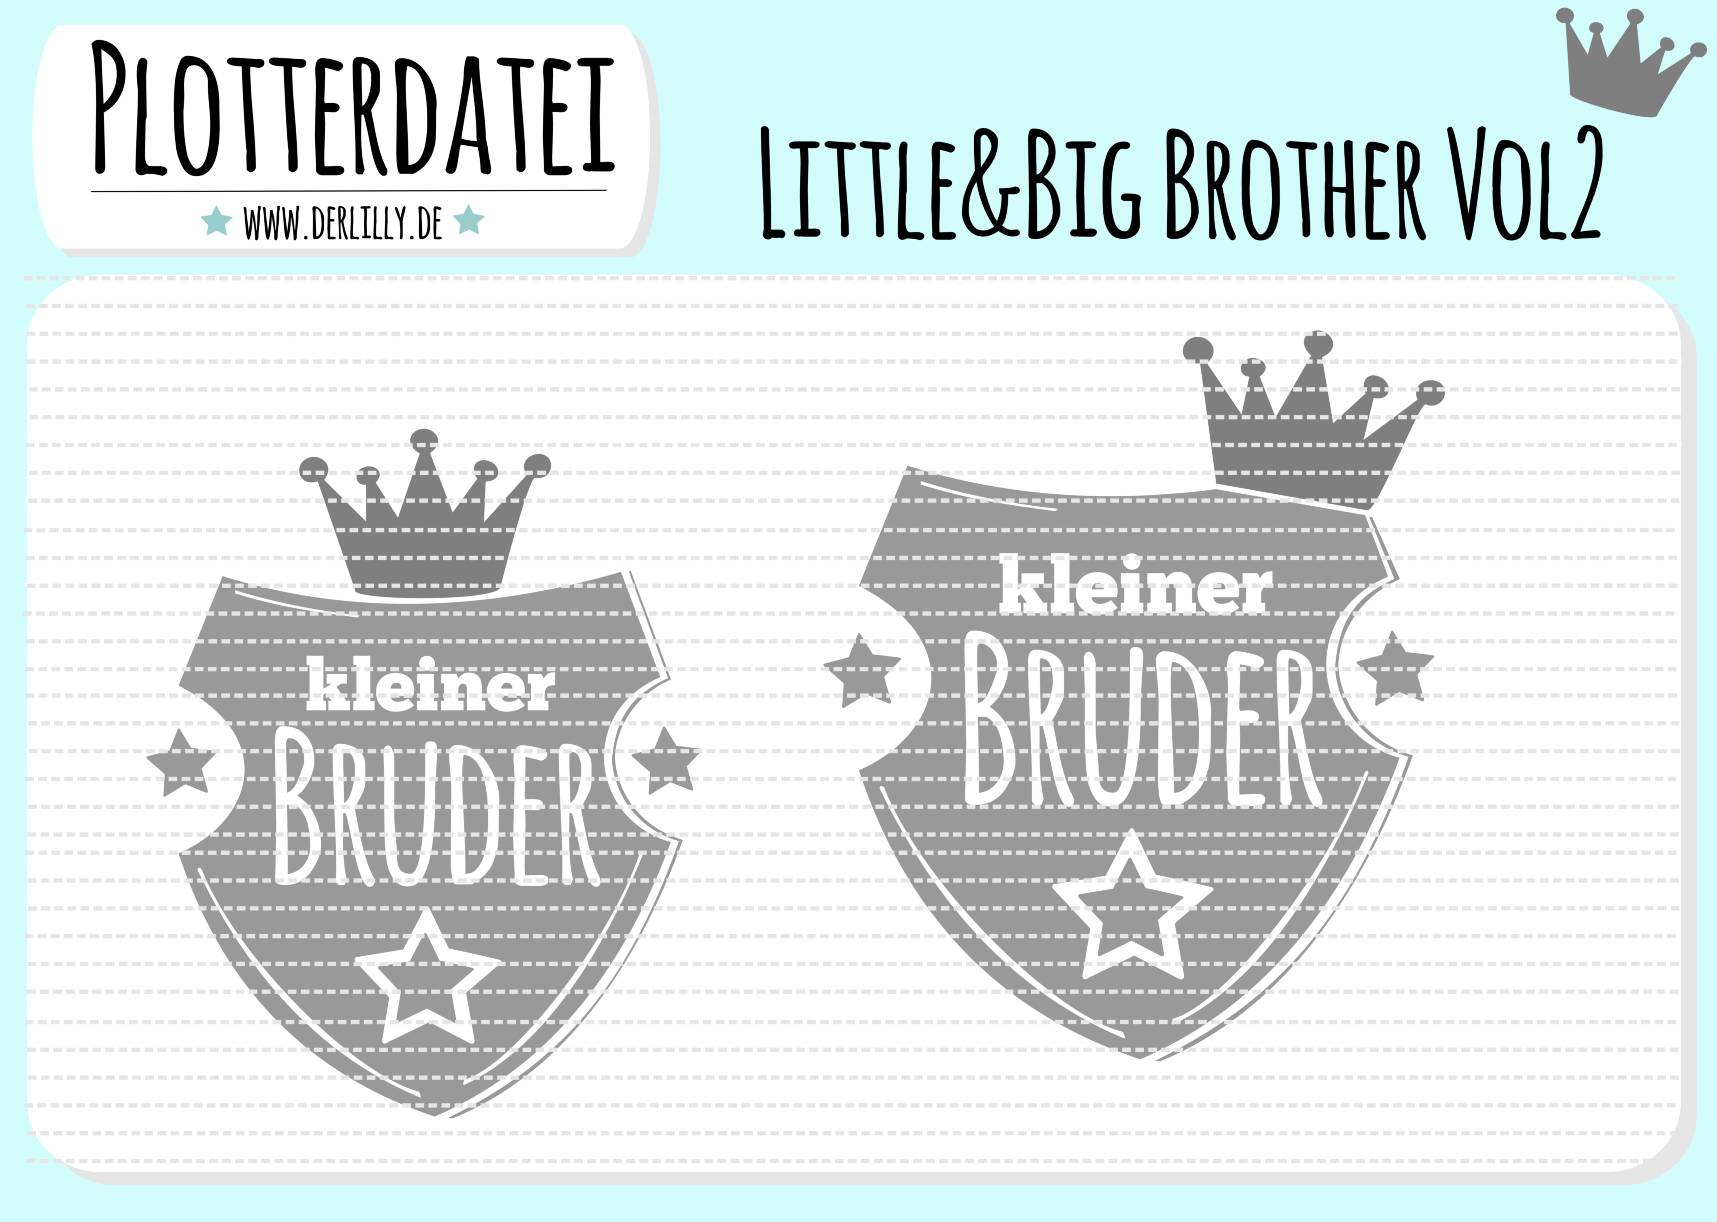 Little & Big Brother Vol 2 titel #1